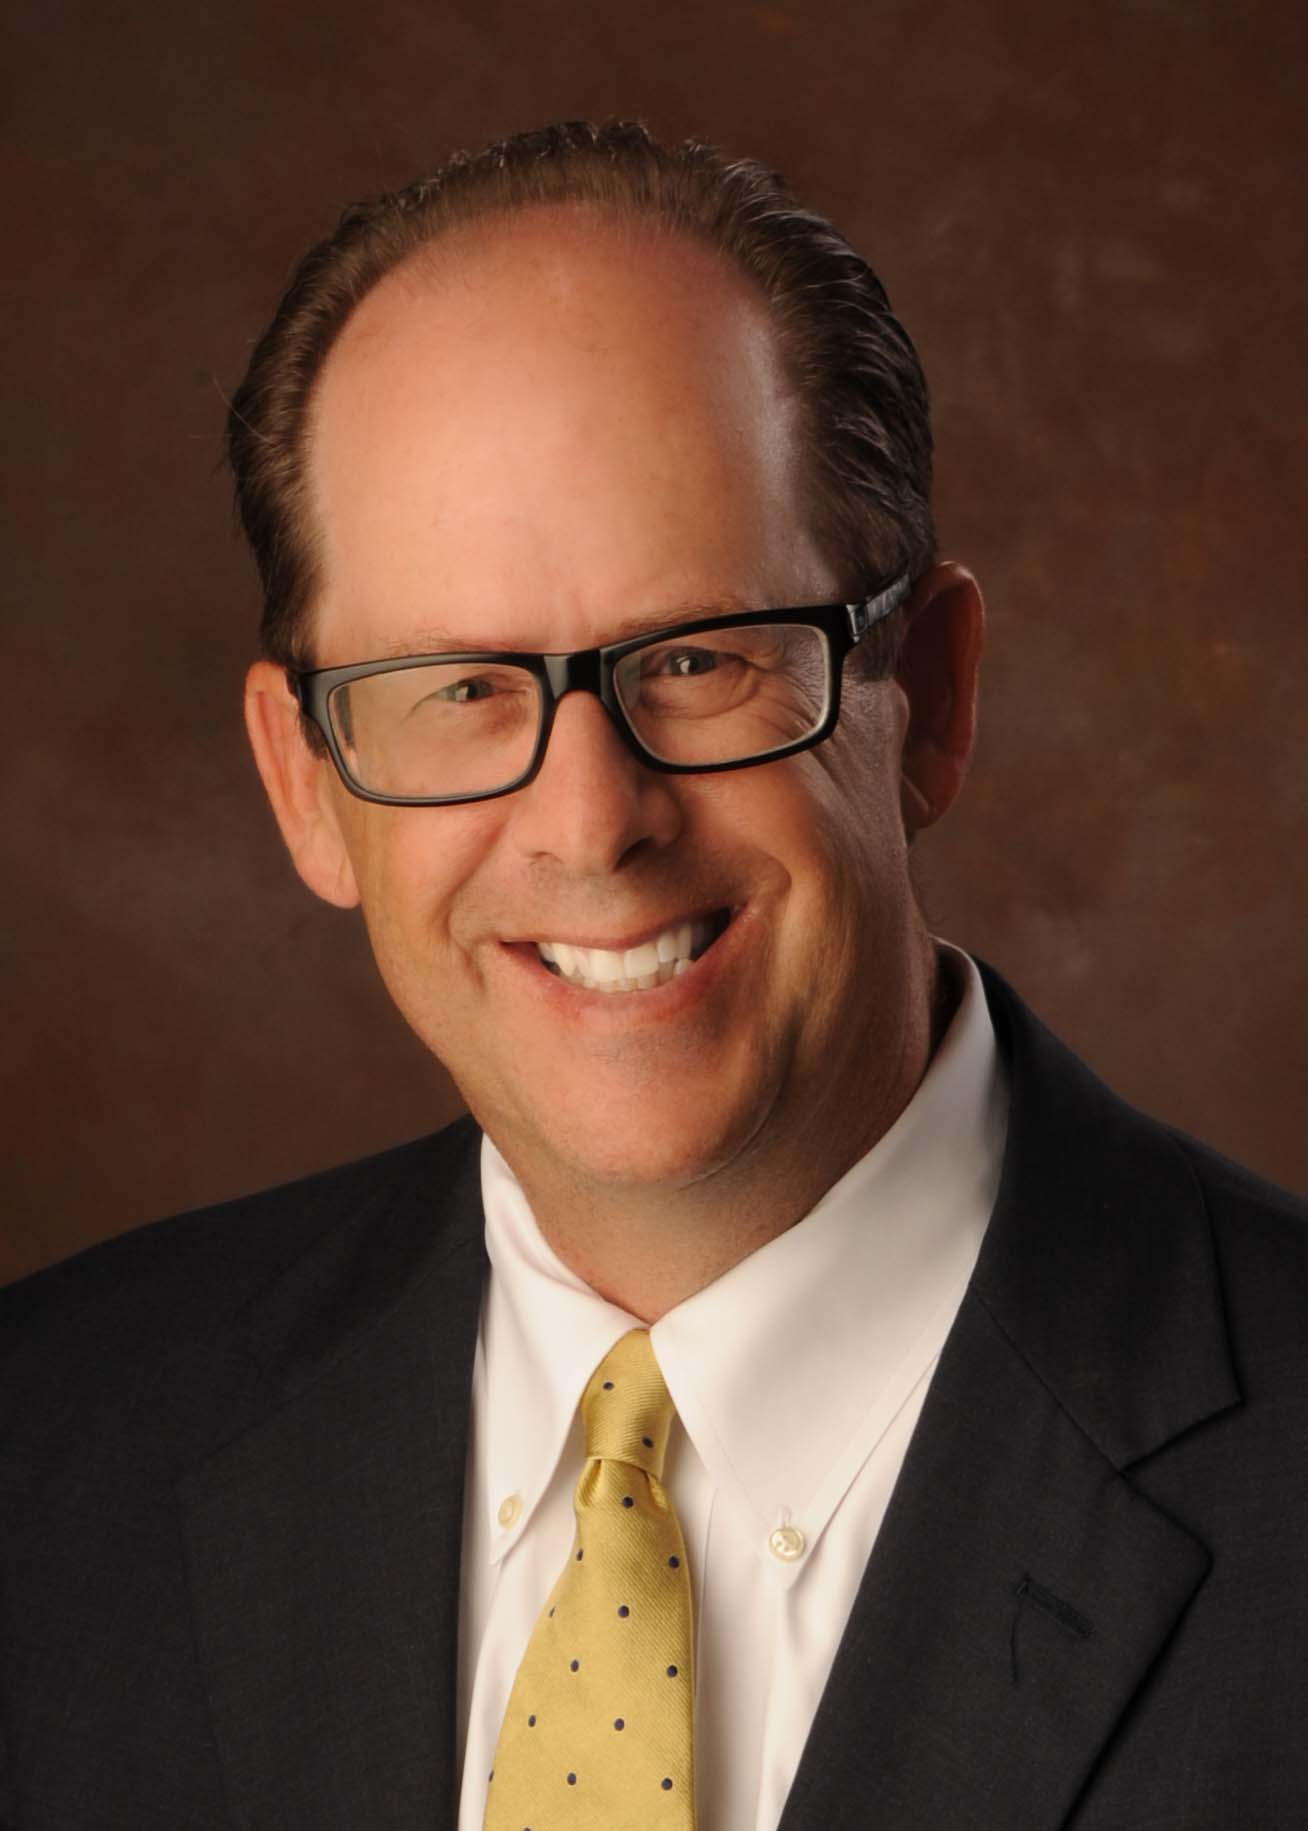 Edward P. Schreiber - EVP and Chief Risk Officer